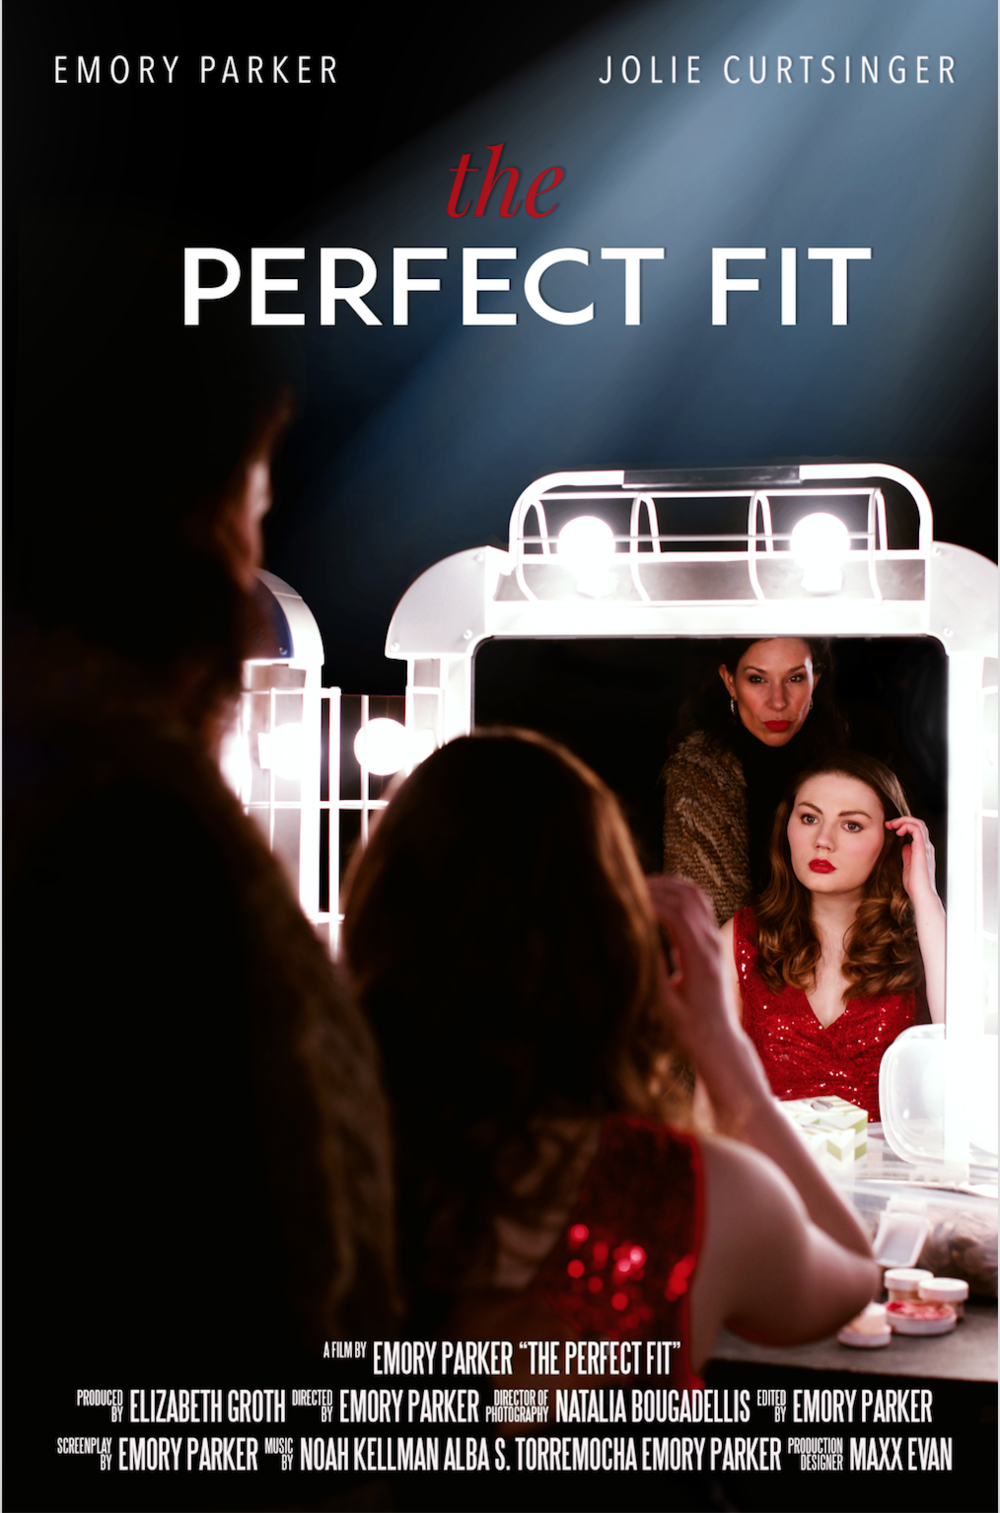 The Perfect Fit Poster 7-17.jpg